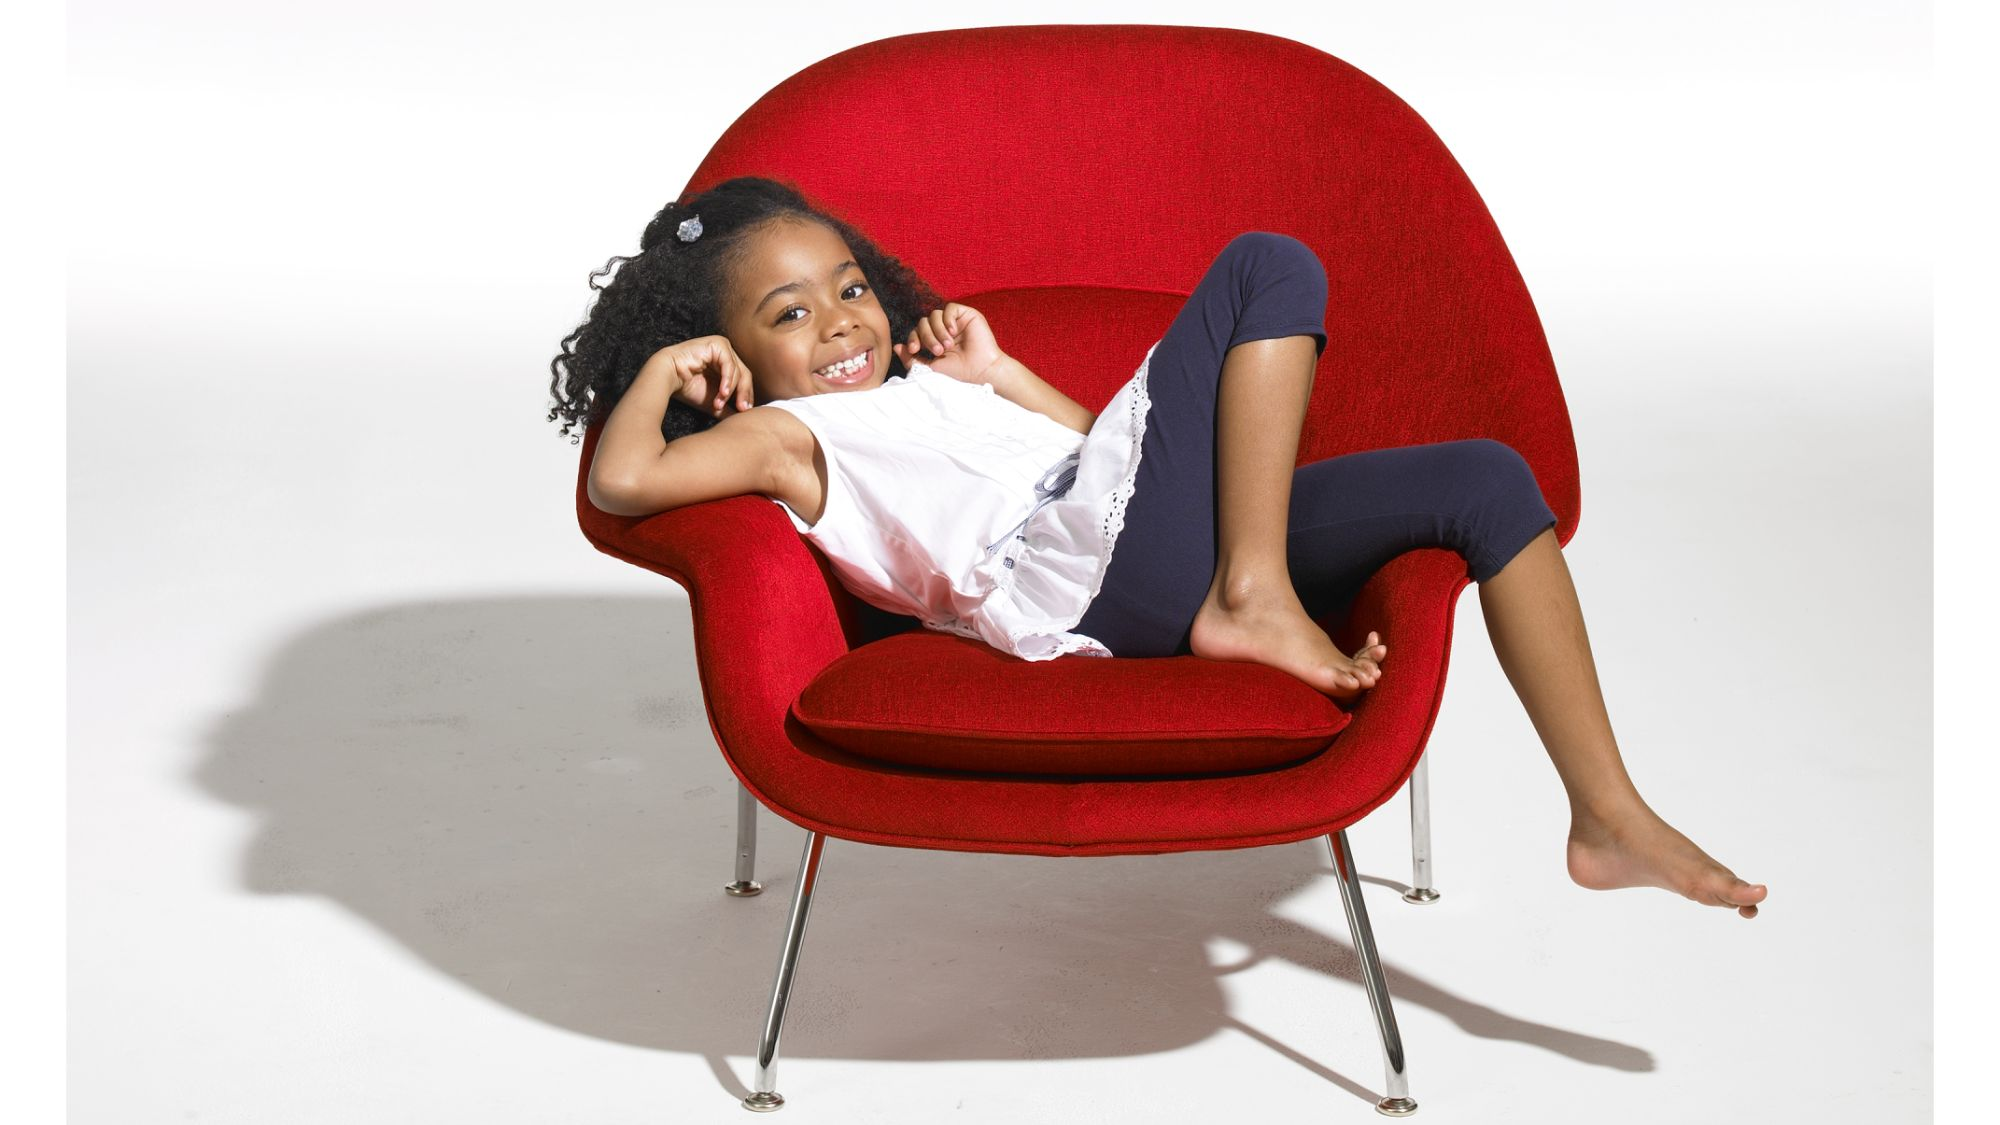 a child on a chair